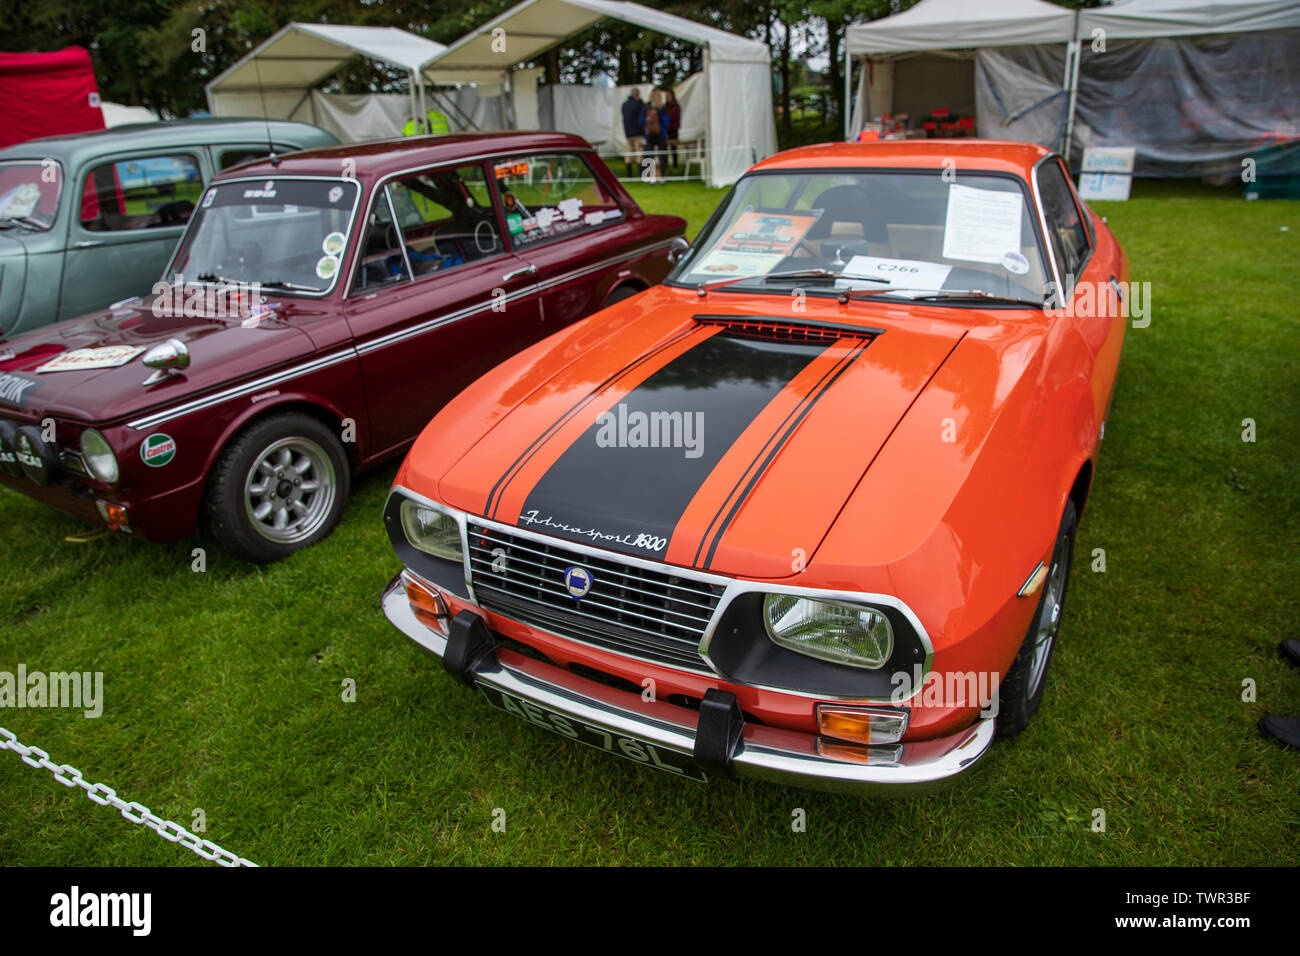 AES 76L, Lancia Fulvia Sport 1600, 1973 at The Bath Festival of Motoring 2019 - Stock Image